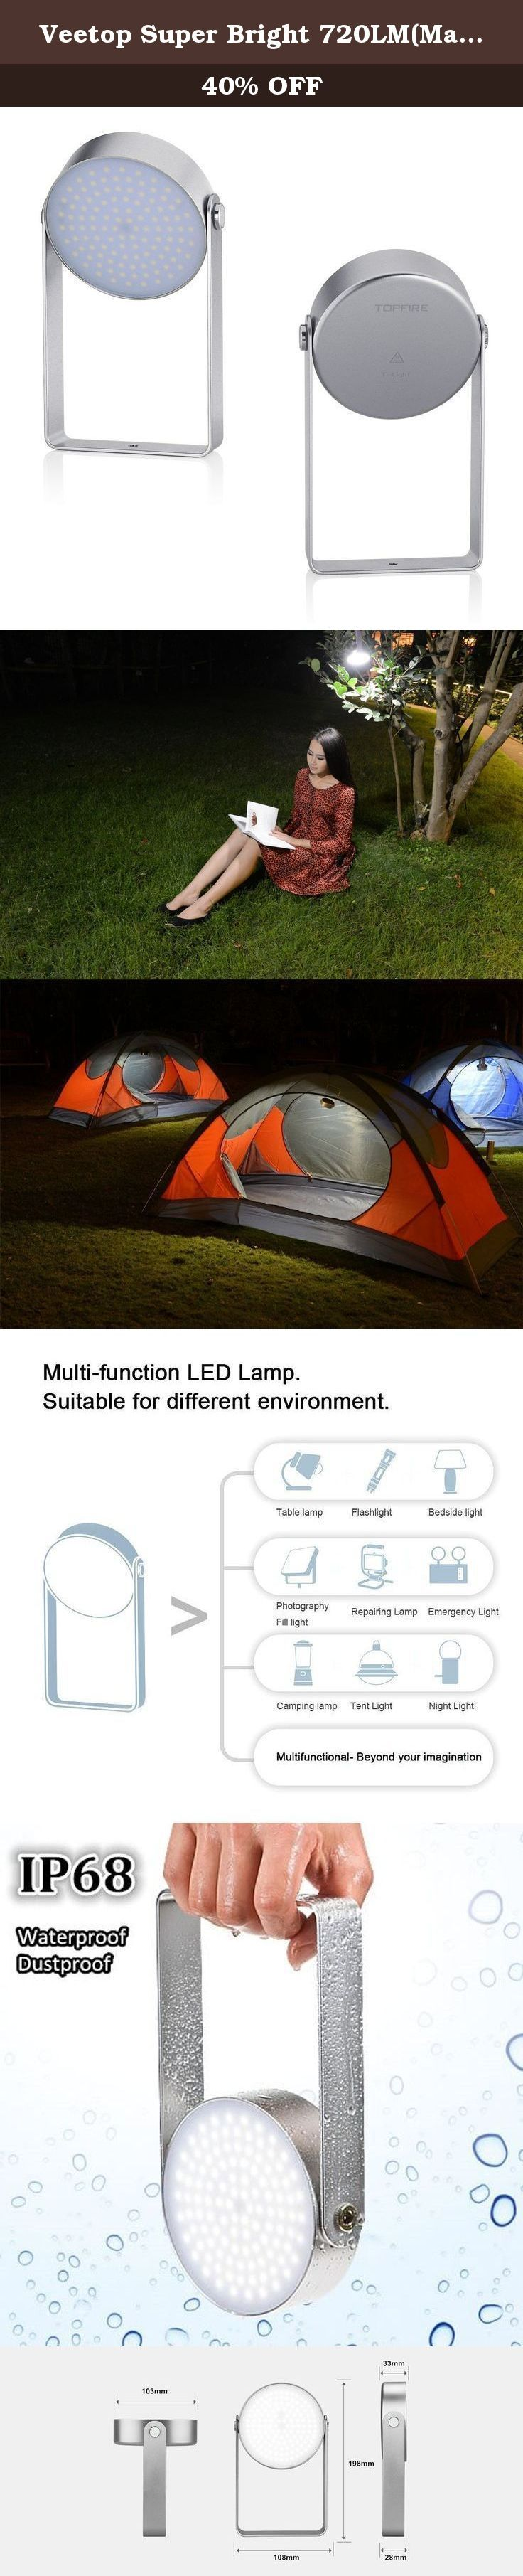 Veetop Super Bright 720LM(Max) LED Light, Waterproof LED lantern LED Lamp Light for Camping, BBQ, Hiking, Emergency Use, Car Repairing, Outdoor work, 7W, 5 Brightness Level, Rechargeable, IP68. Veetop Versatile LED Light perfects for outdoor activities, home and other emergency use. * As Outdoor Light: It can replace other camping, BBQ light easily with its ultra brightness ( max 720lm) and its high IP68 waterproof and dustproof performance. Underwater 2 meters for 2 hours. 3 meters...